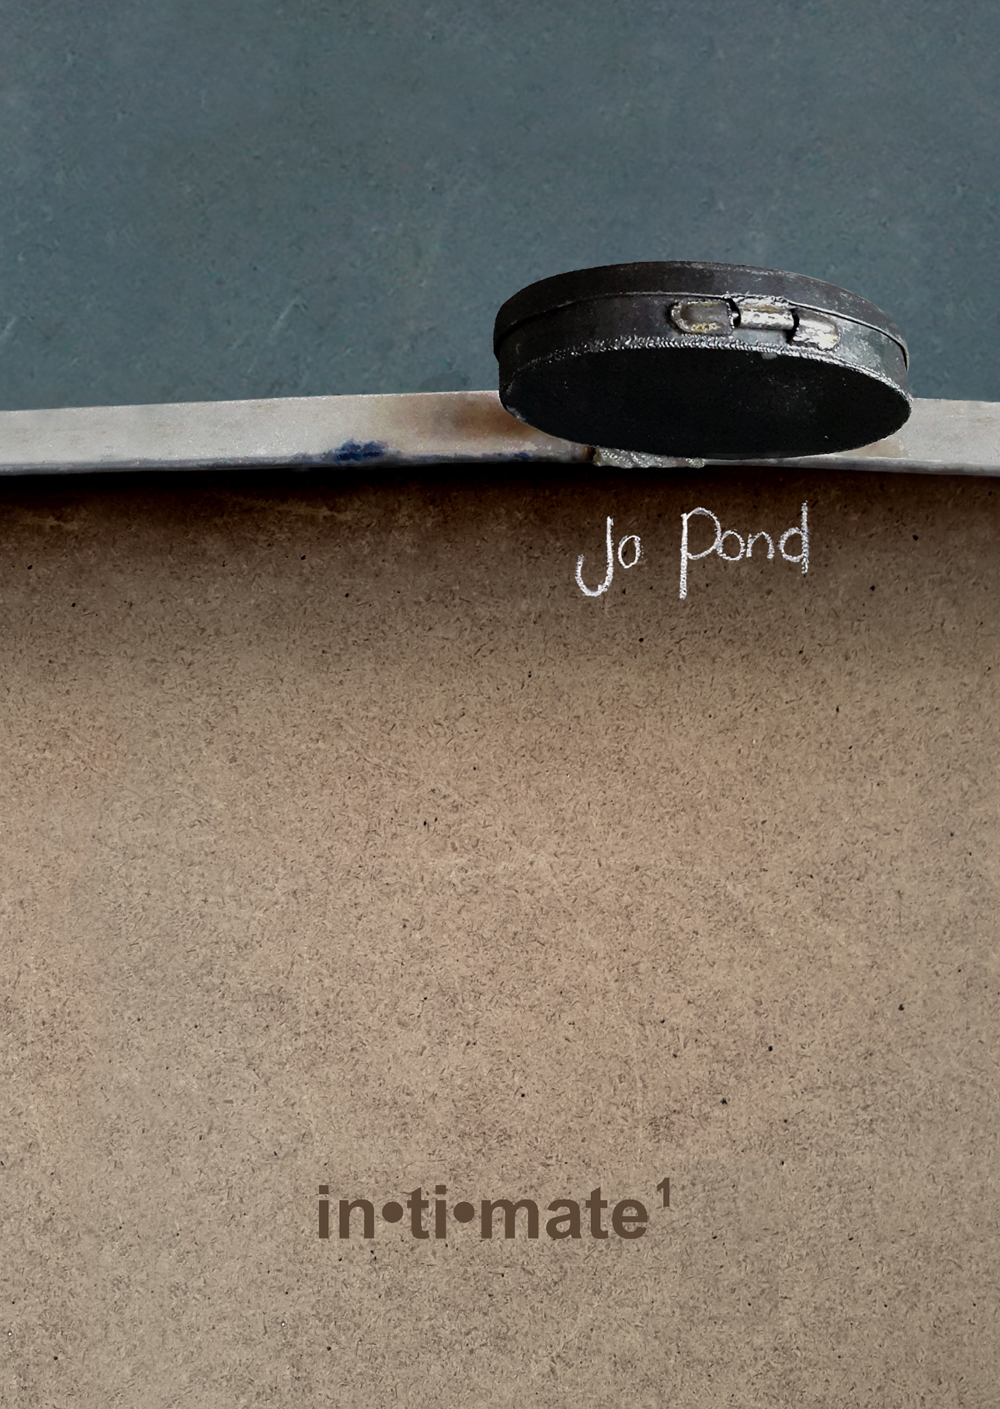 Jo Pond, Exhibition Catalog